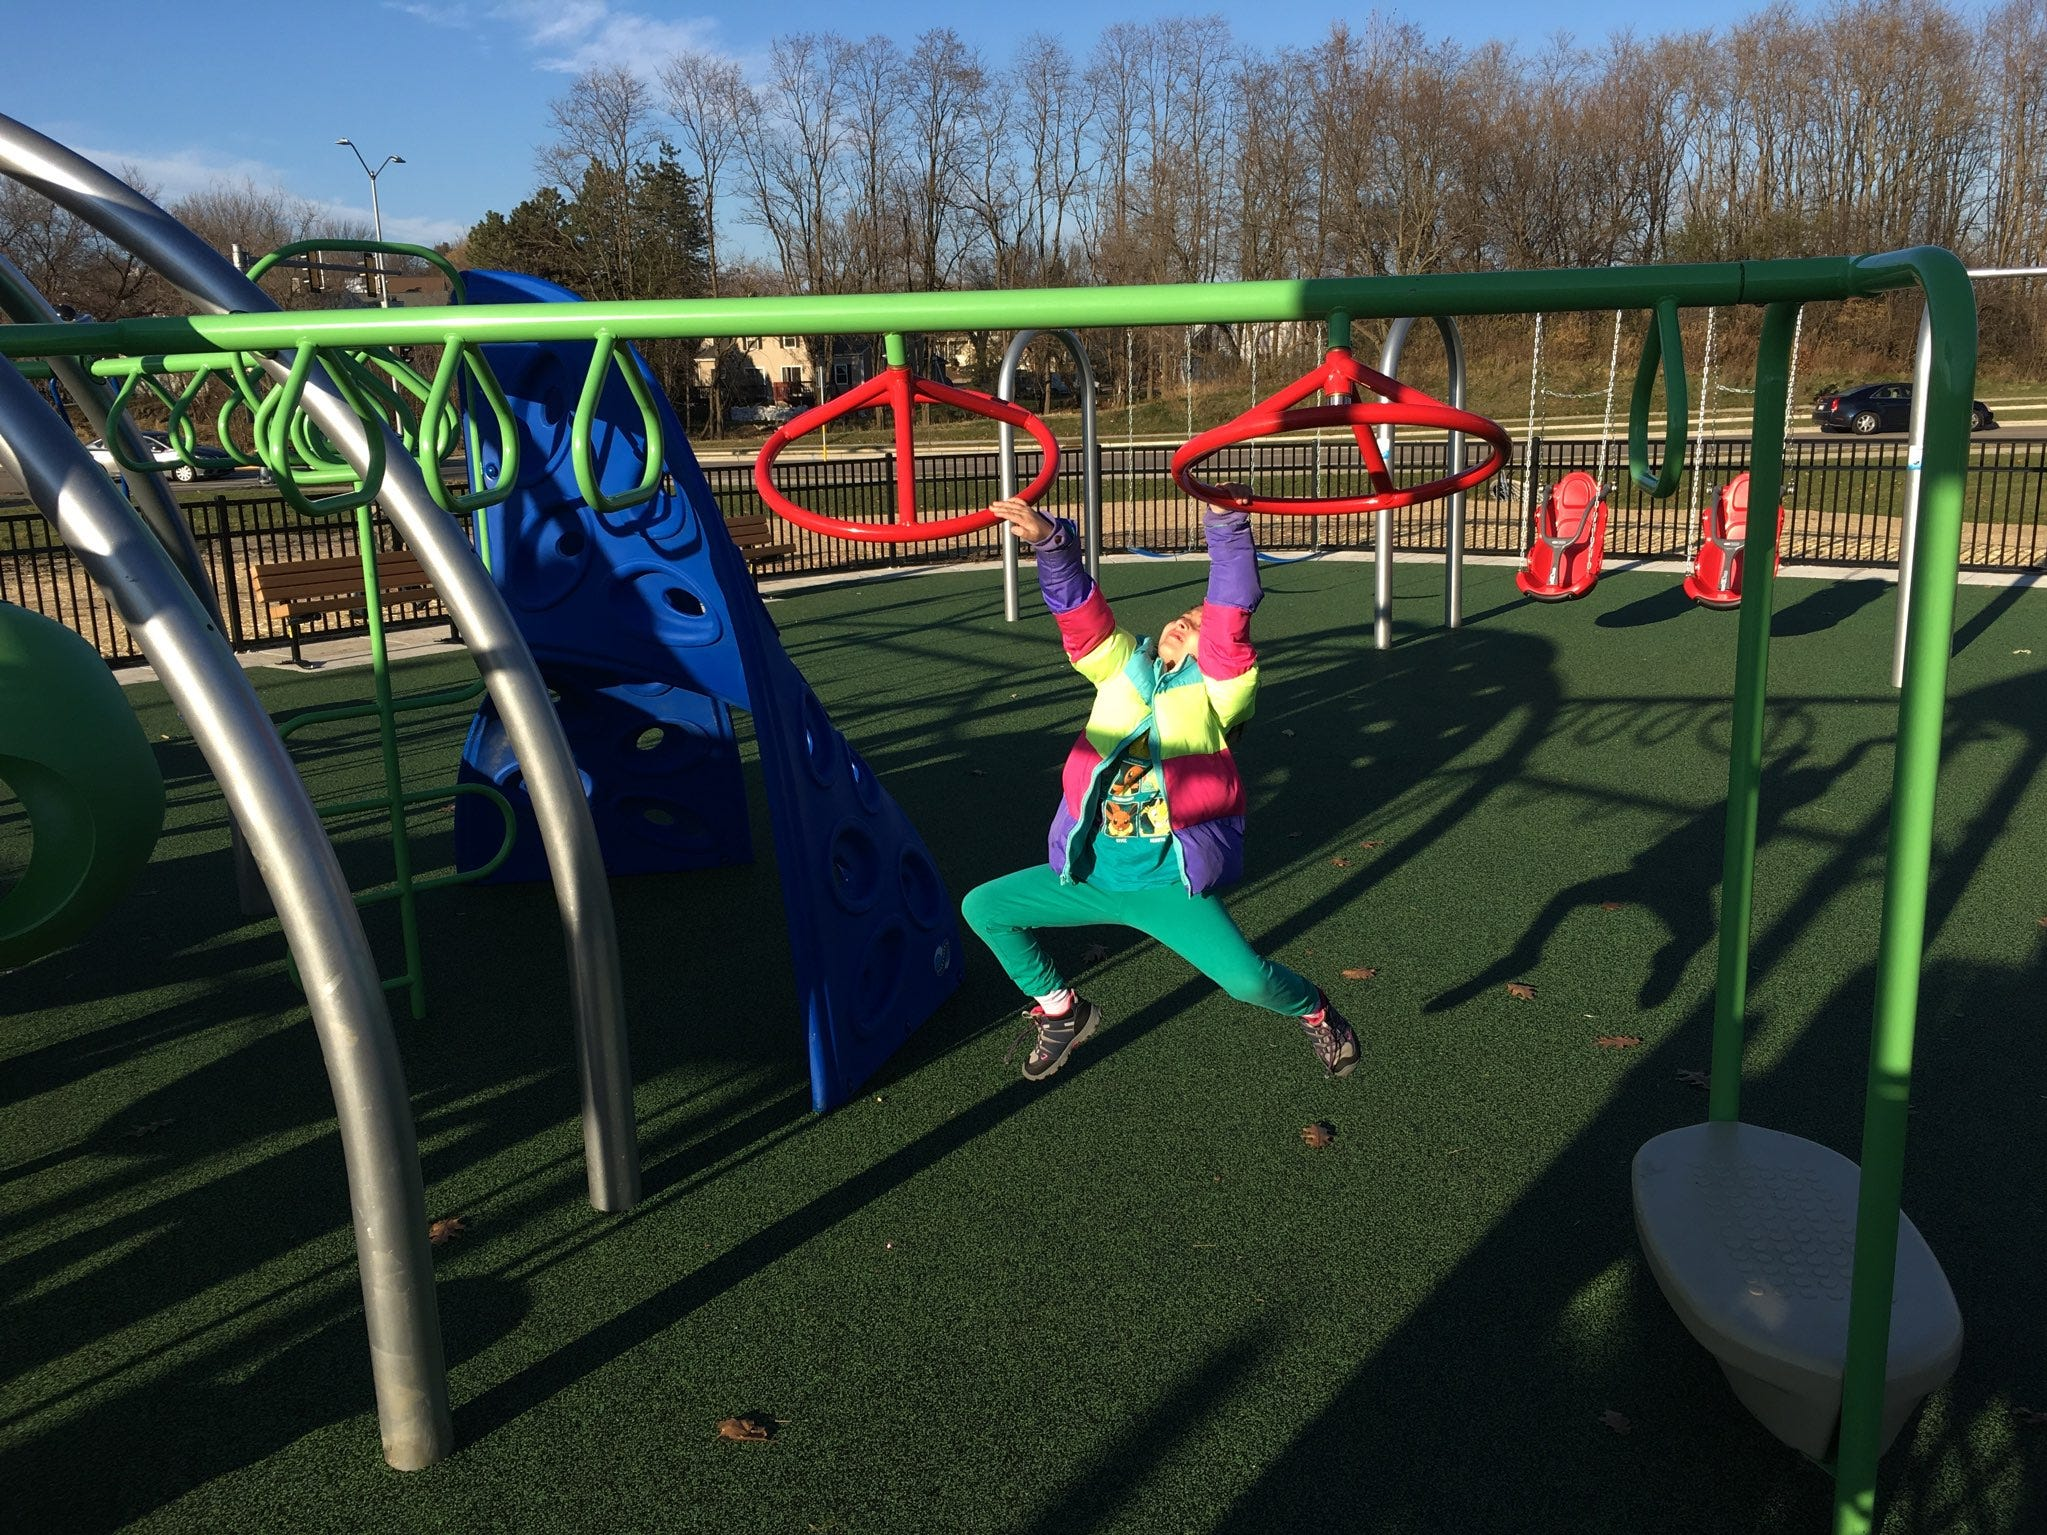 The Elver Park all-inclusive playground in Madison opened in 2018.